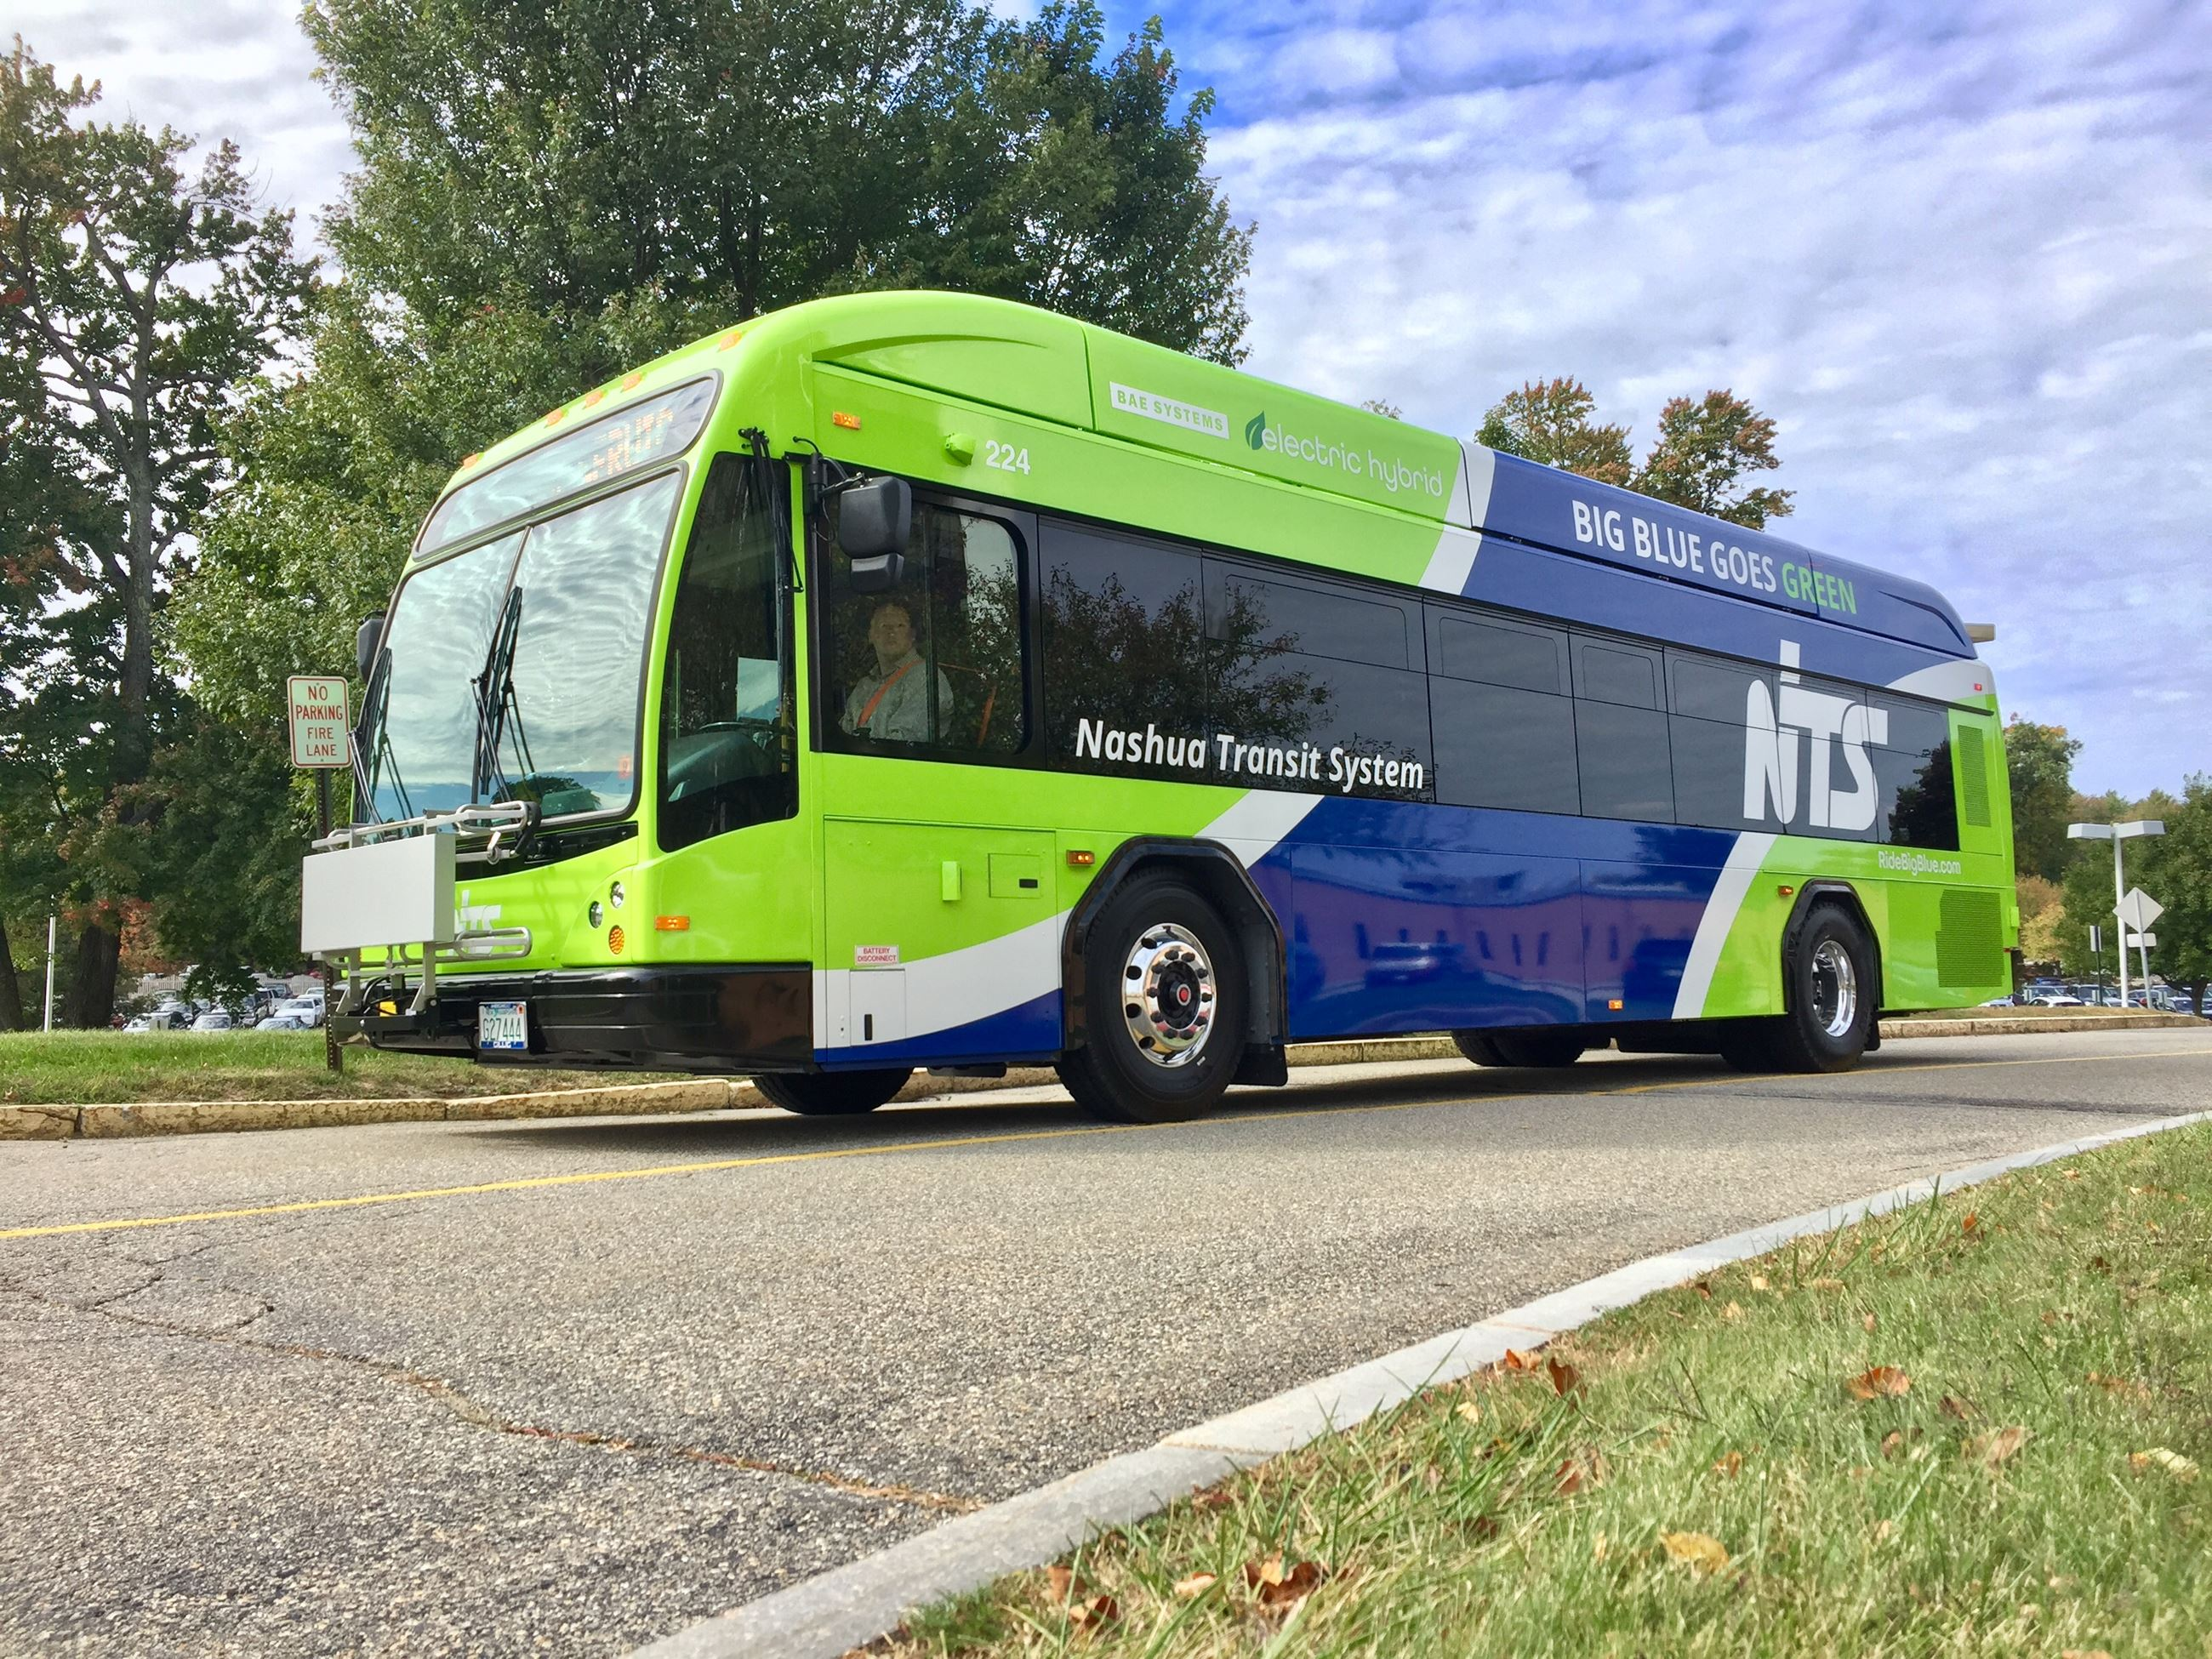 NTS's new lime green and blue electric hybrid bus pulls up the driveway at BAE Systems